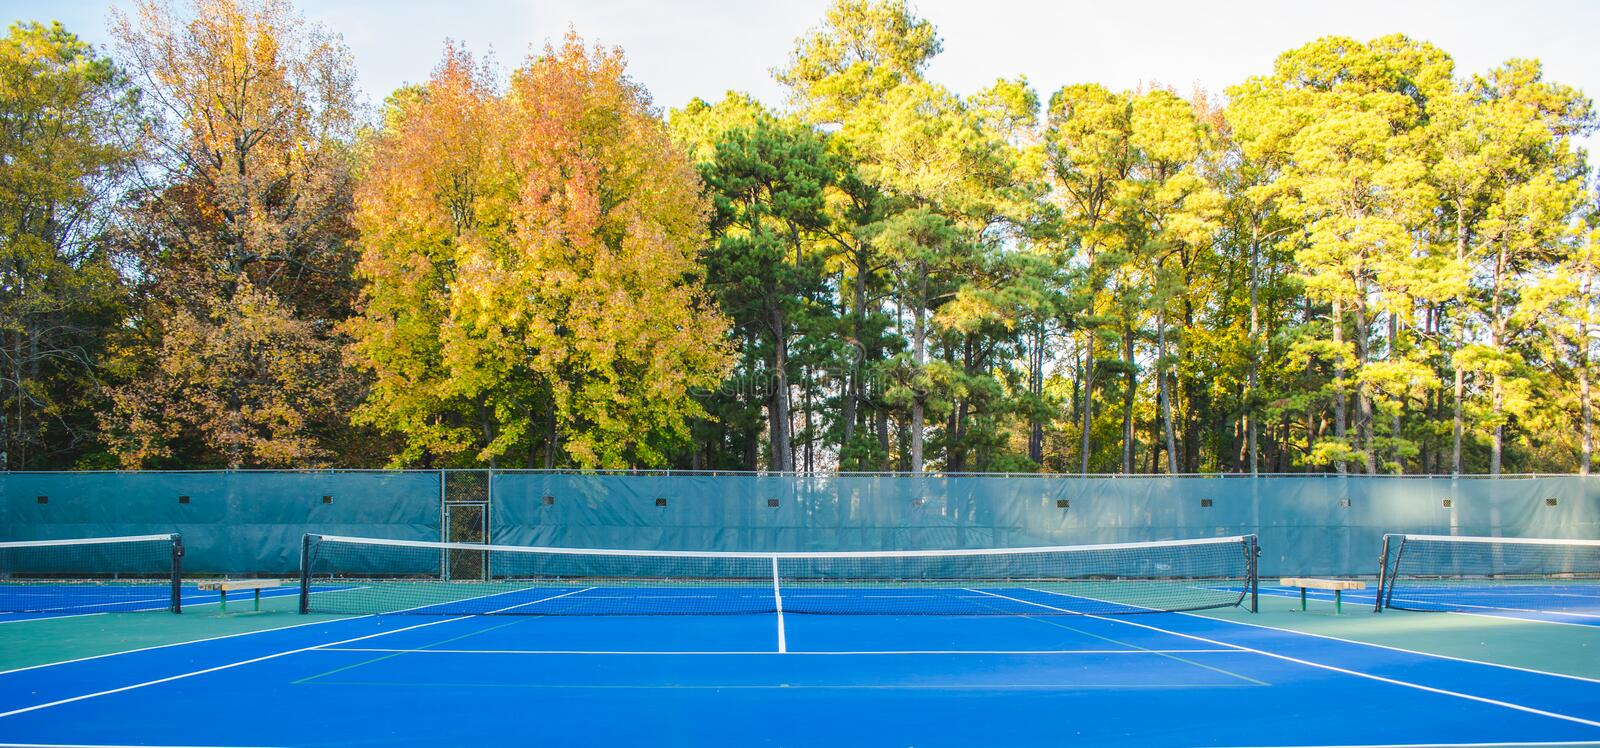 Openluchtasphalt tennis courts background royalty-vrije stock foto